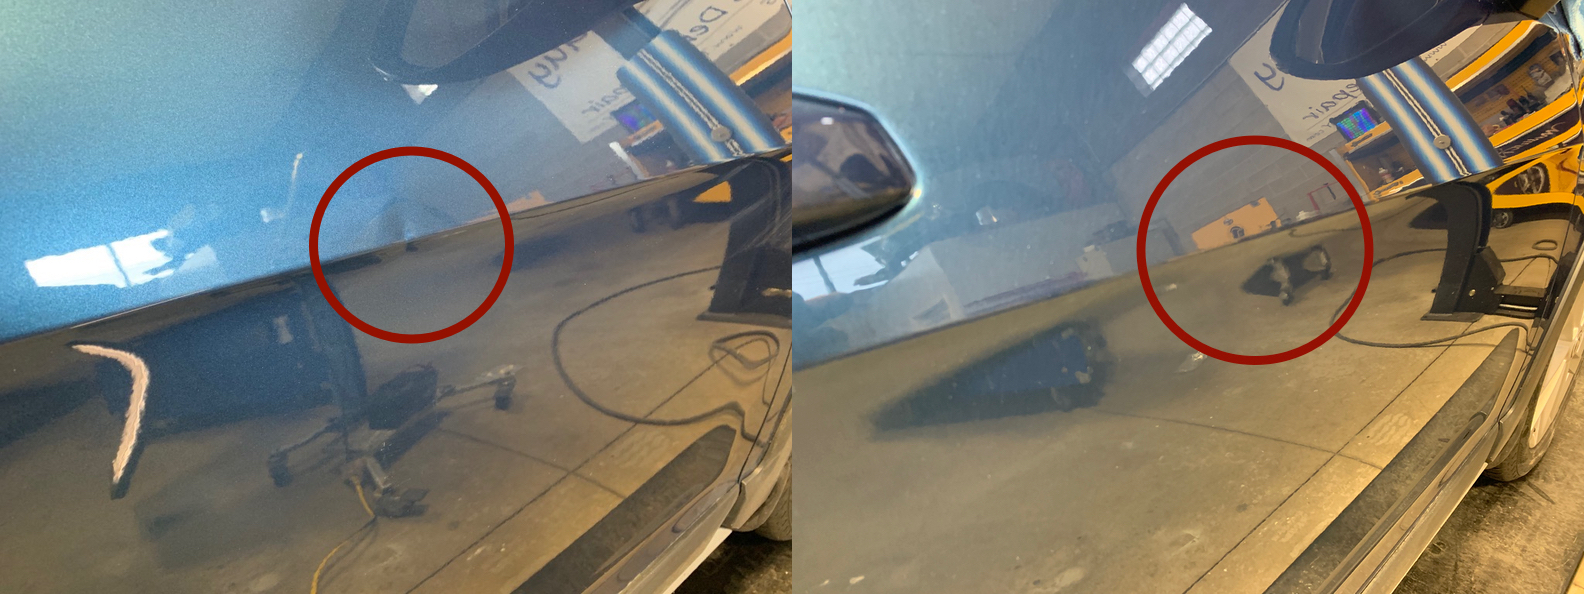 BEFORE & AFTER: SMALL DING IN DOOR BODY LINE; DAMAGE REMOVED & REPAIRED WITH PDR BY THE DENT GUY